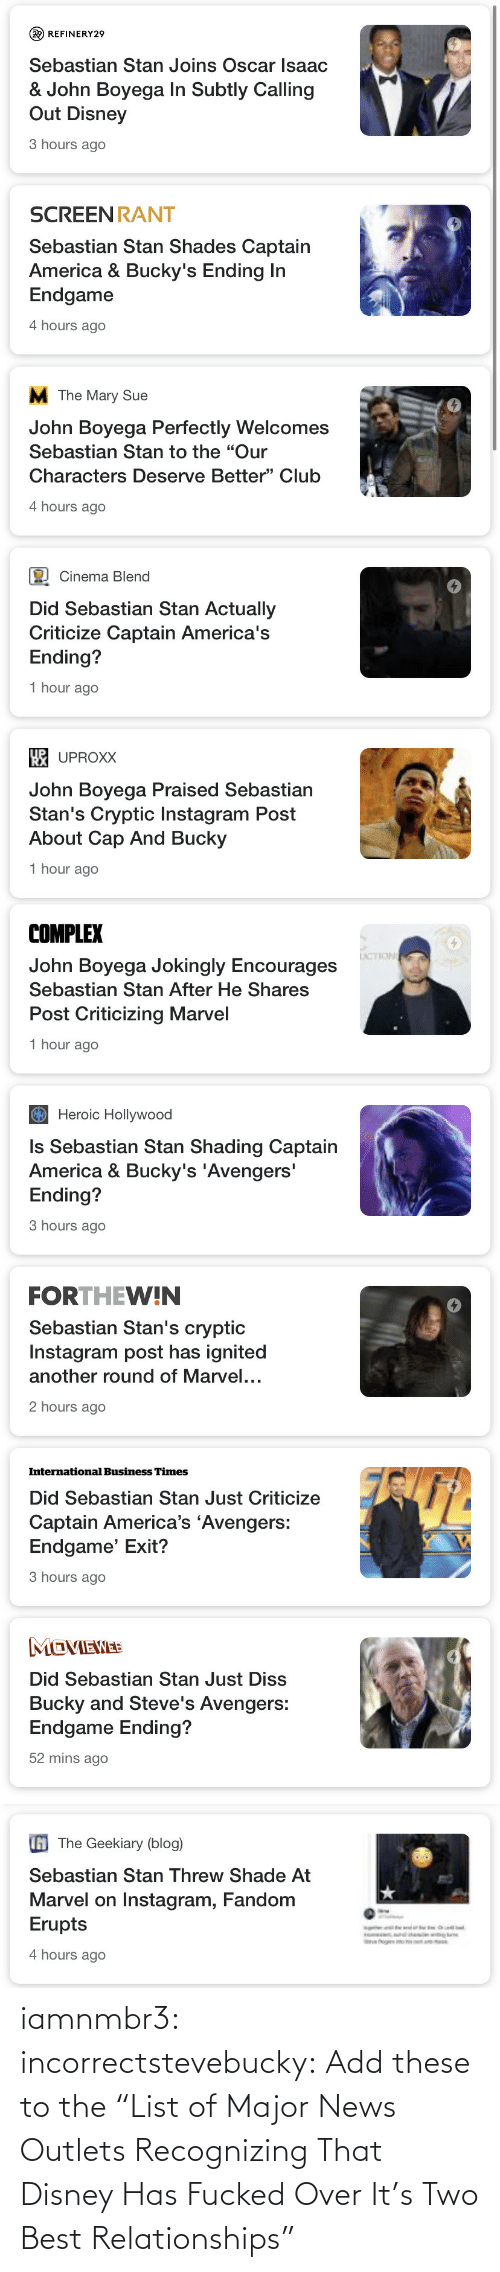 """Disney, Gif, and News: iamnmbr3:  incorrectstevebucky: Add these to the """"List ofMajor News Outlets Recognizing That Disney Has Fucked Over It's Two Best Relationships"""""""